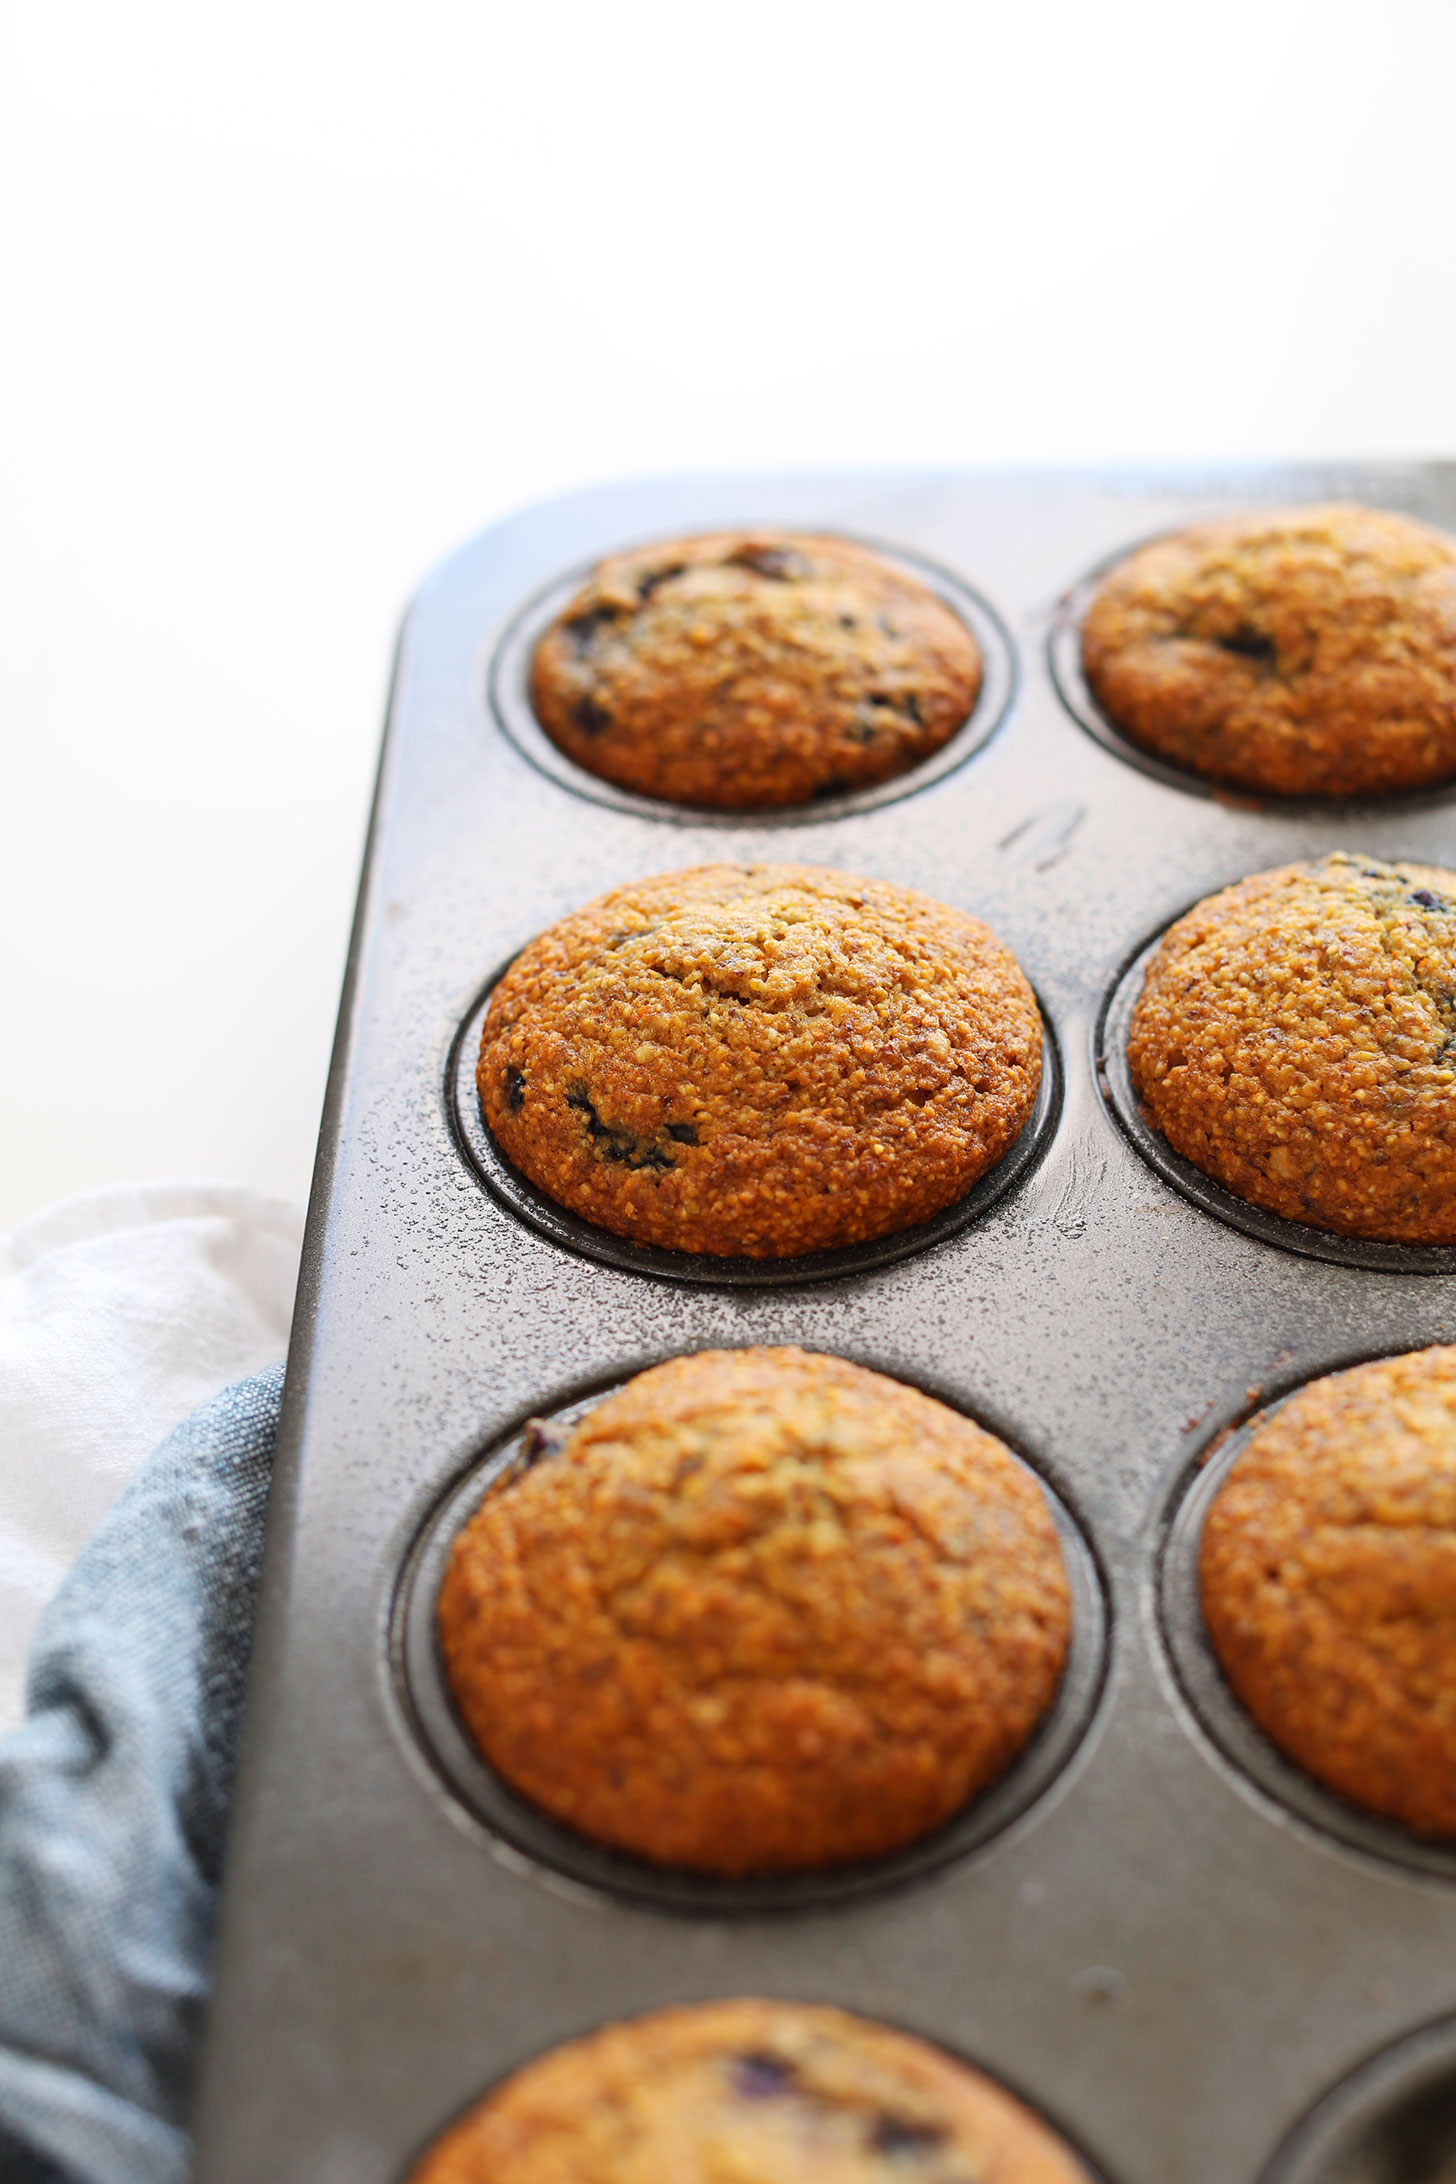 A batch of our Blackberry Cornmeal Muffins fresh out of the oven for a vegan snack